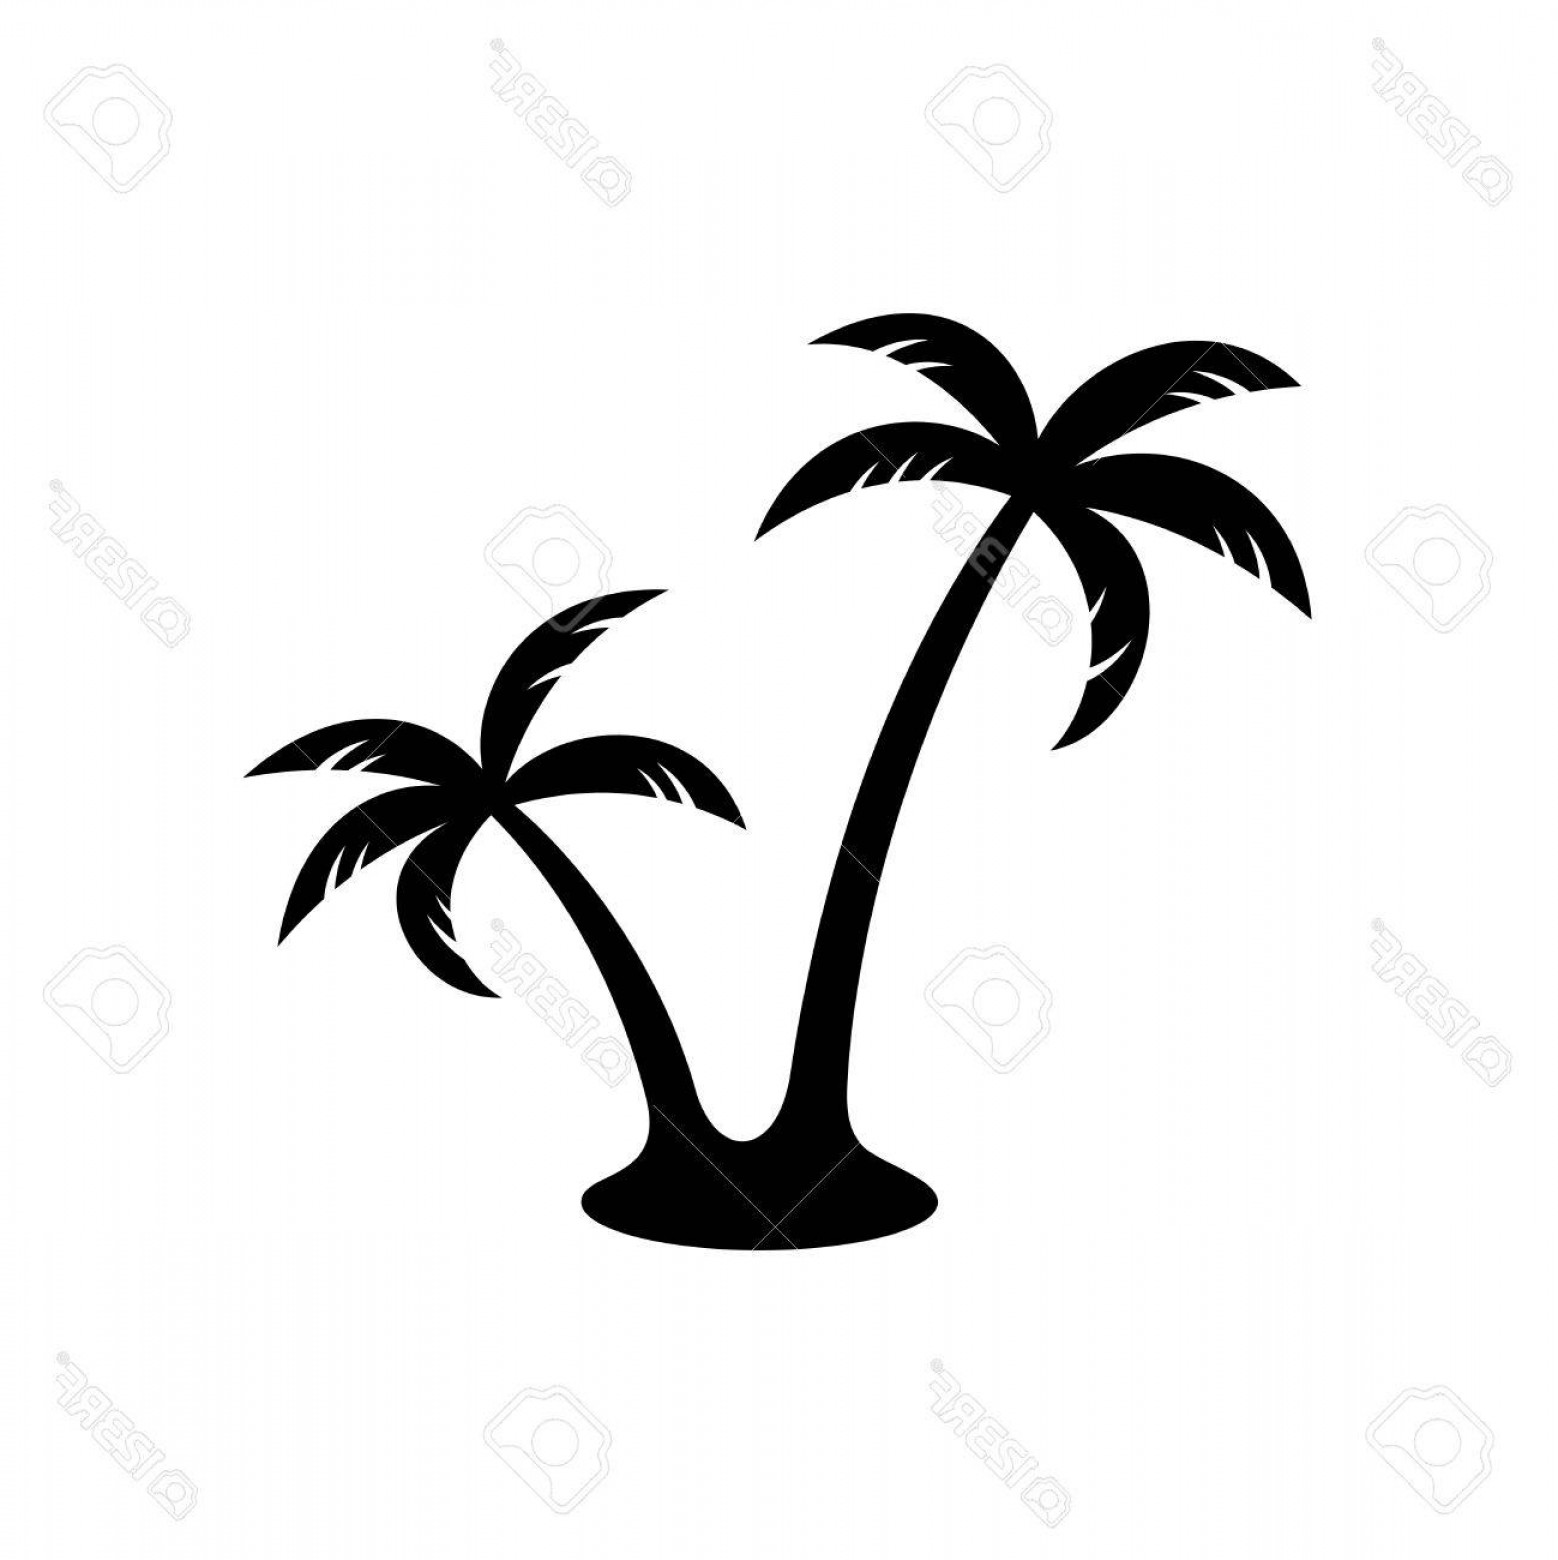 Simple Palm Tree Vector: Photostock Vector Palm Trees Silhouette Simple Black Two Palm Trees With One Foot